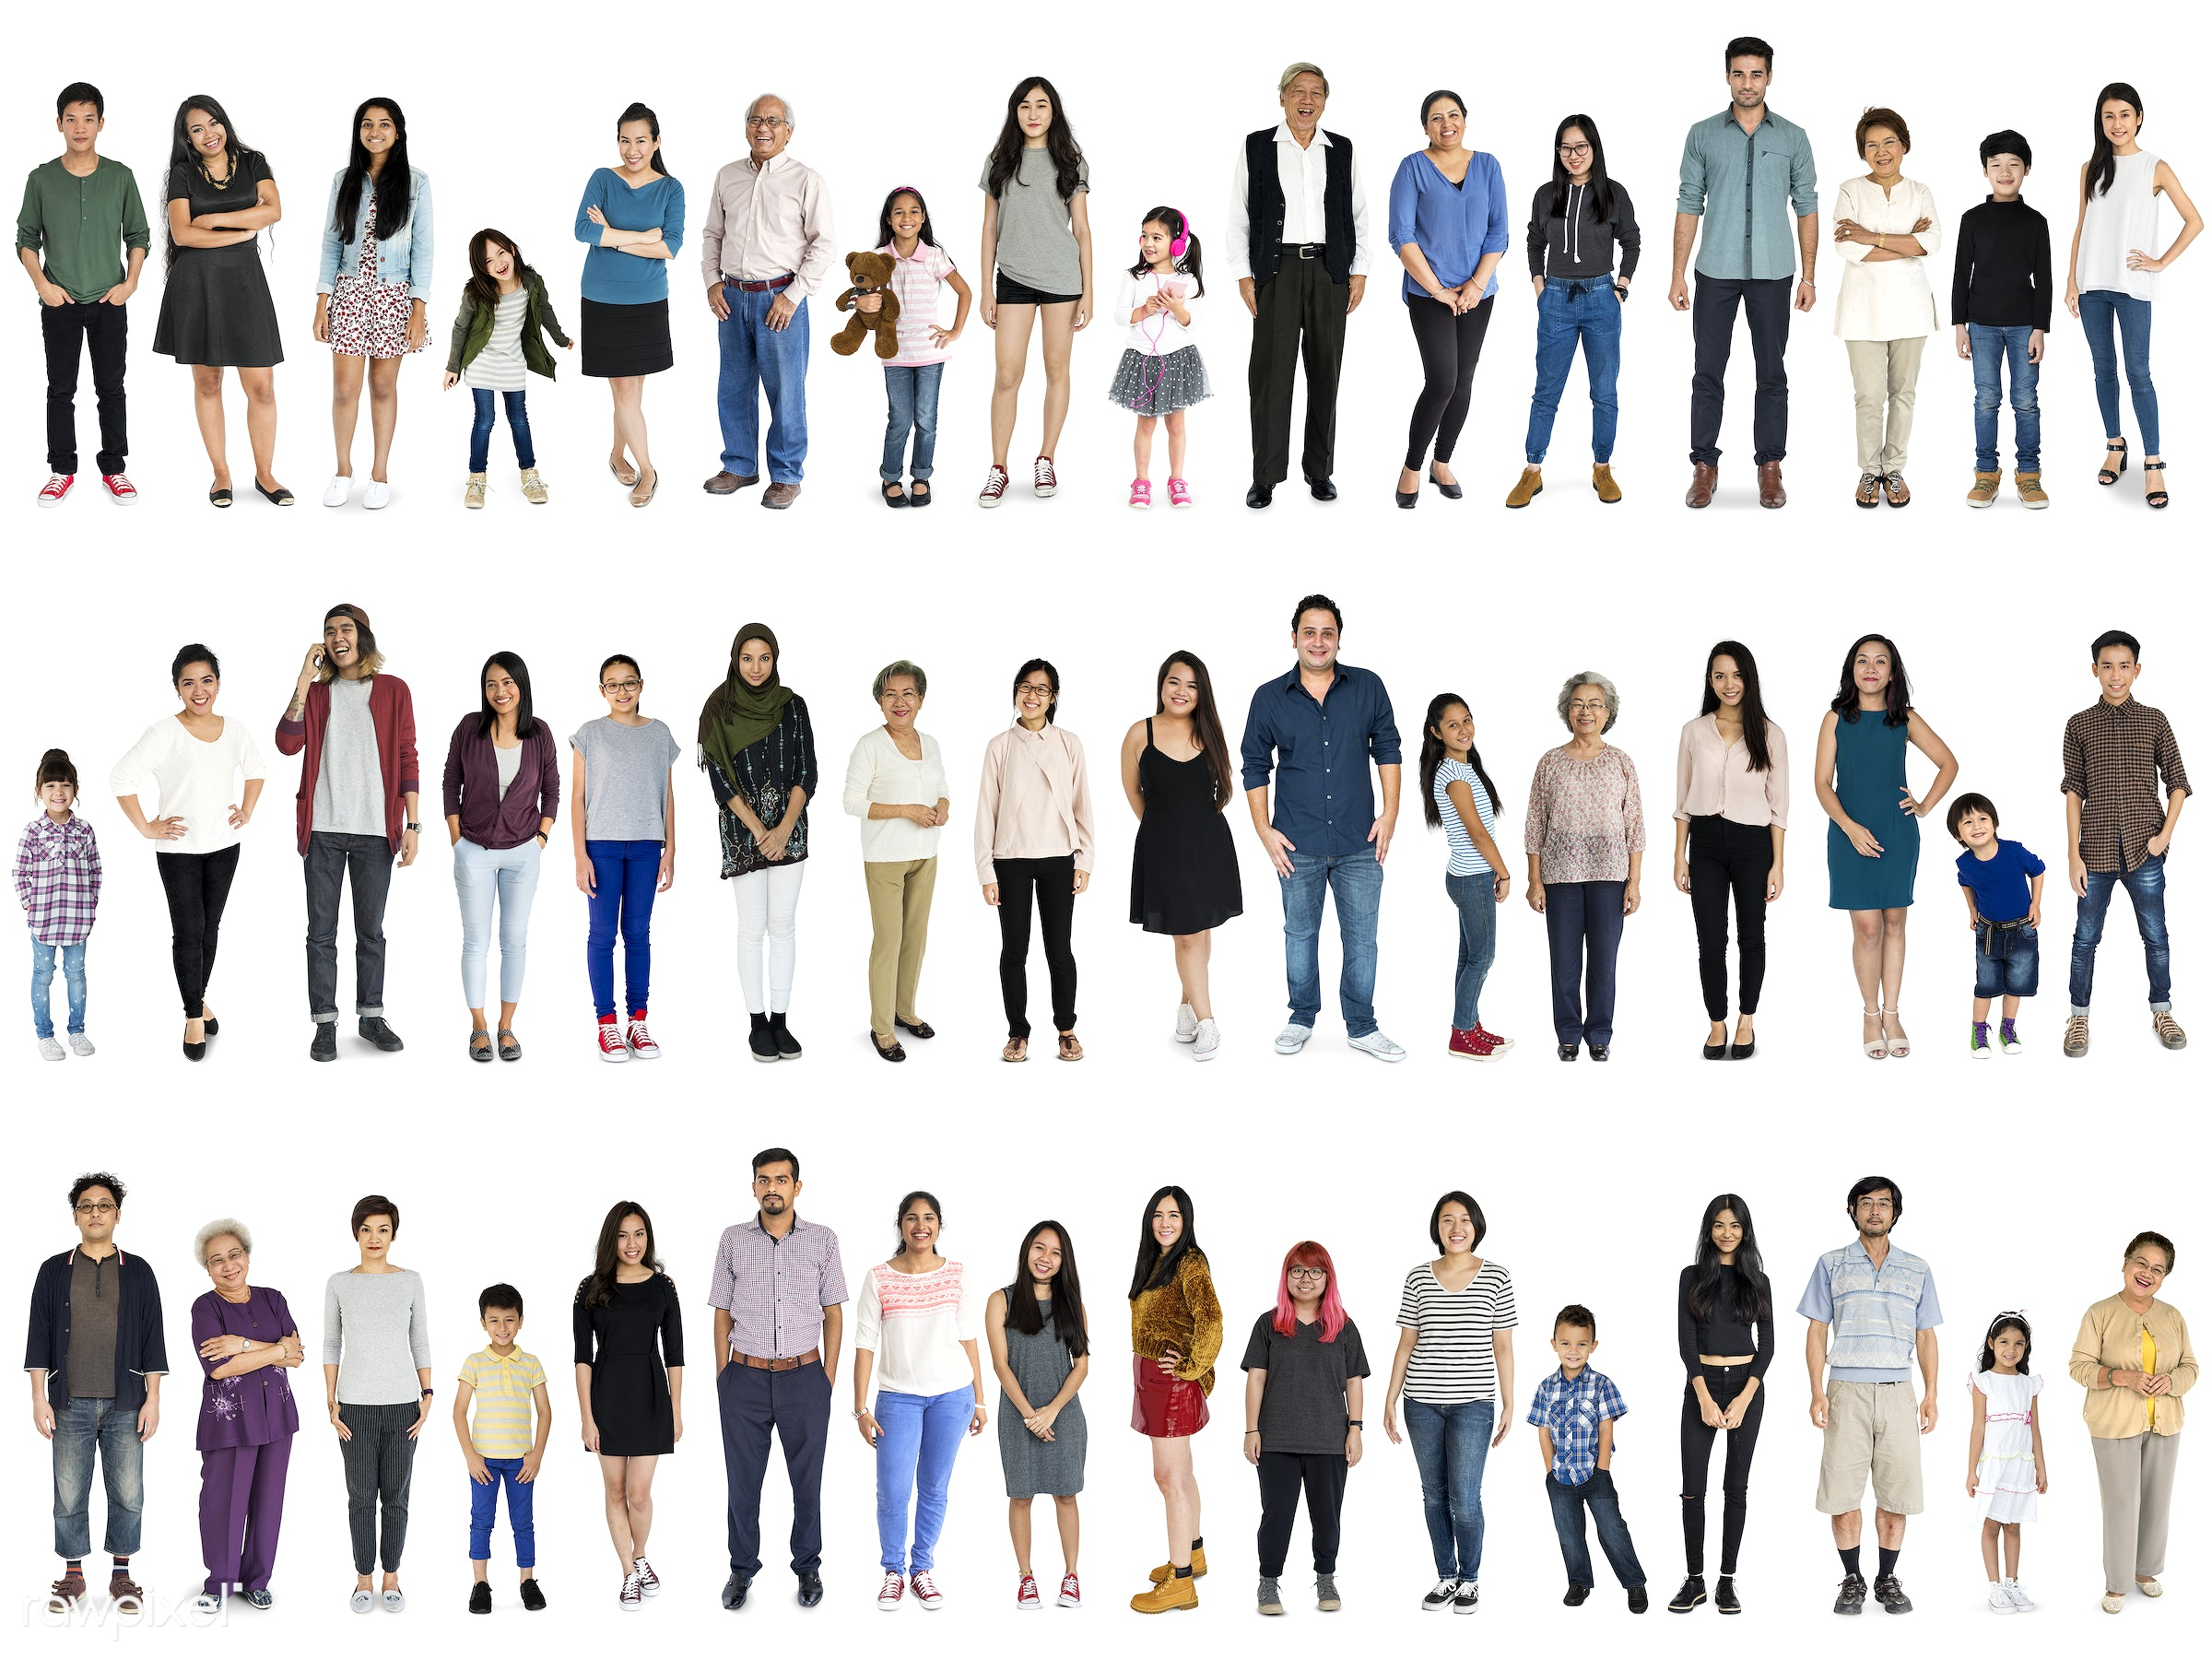 Diverse people set - studio, gentlemen, person, diverse, set, retired, retire, collection, people, together, attraction,...